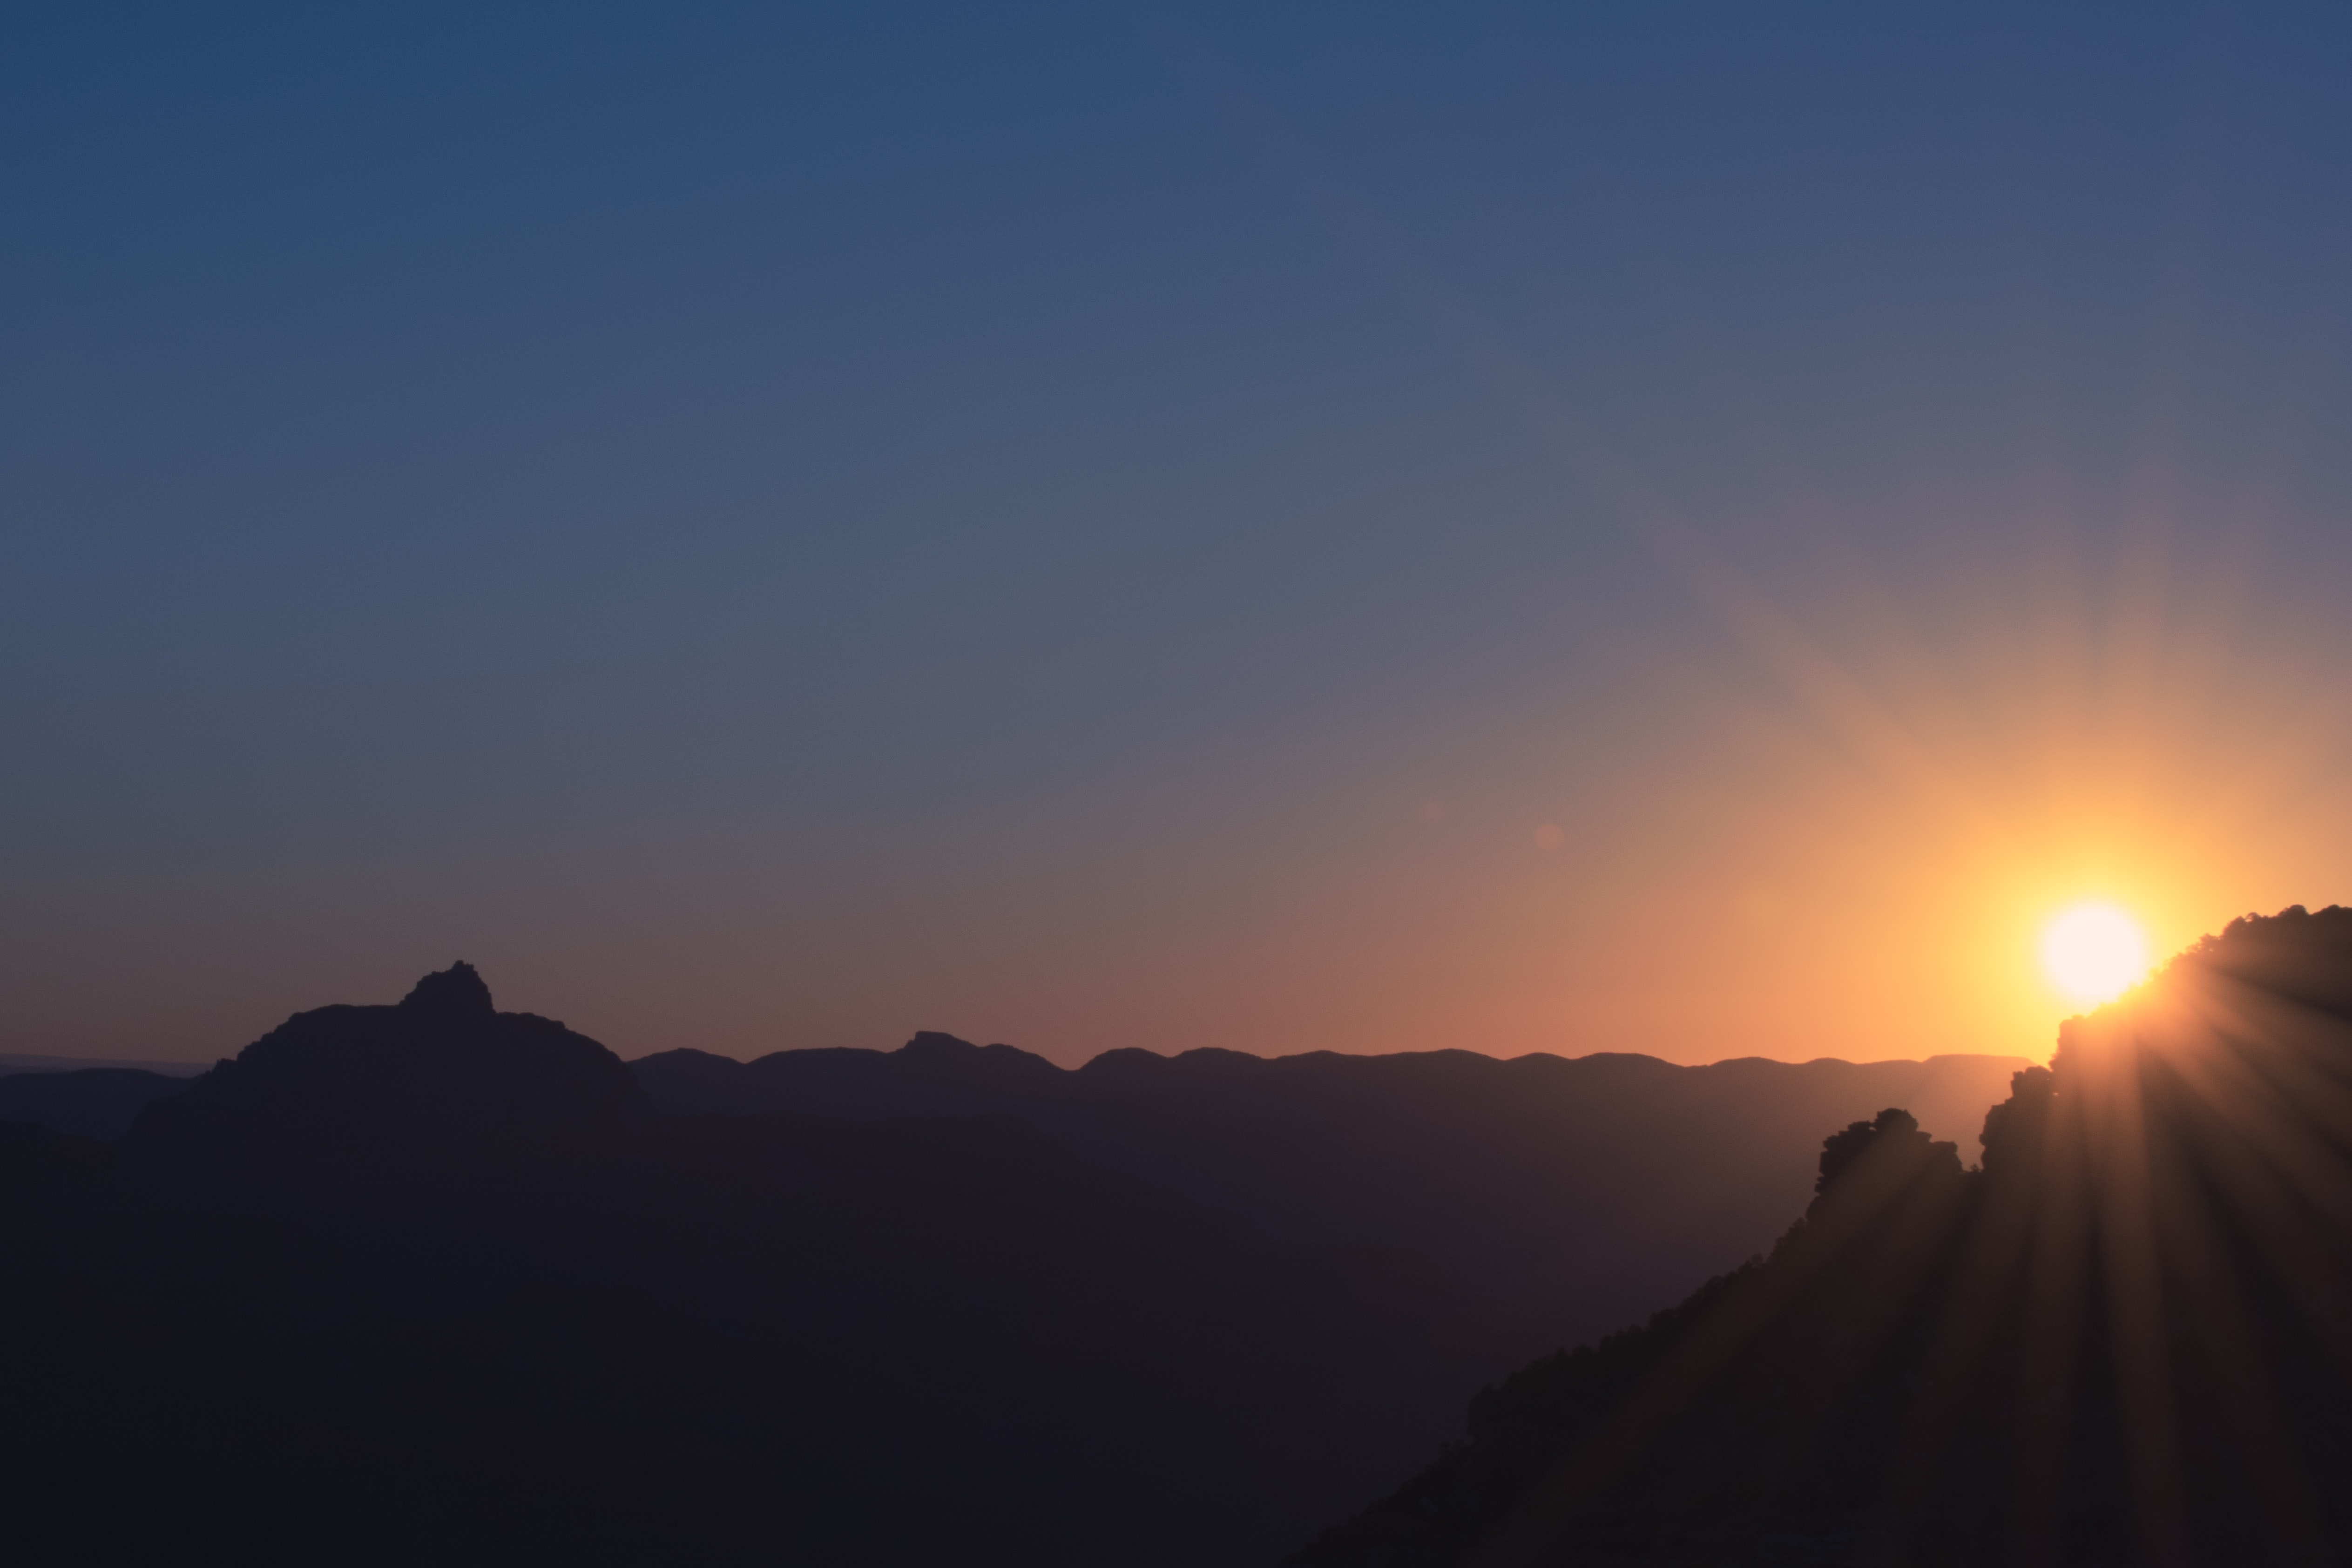 A sunset over a silhouette of an undulating mountain range